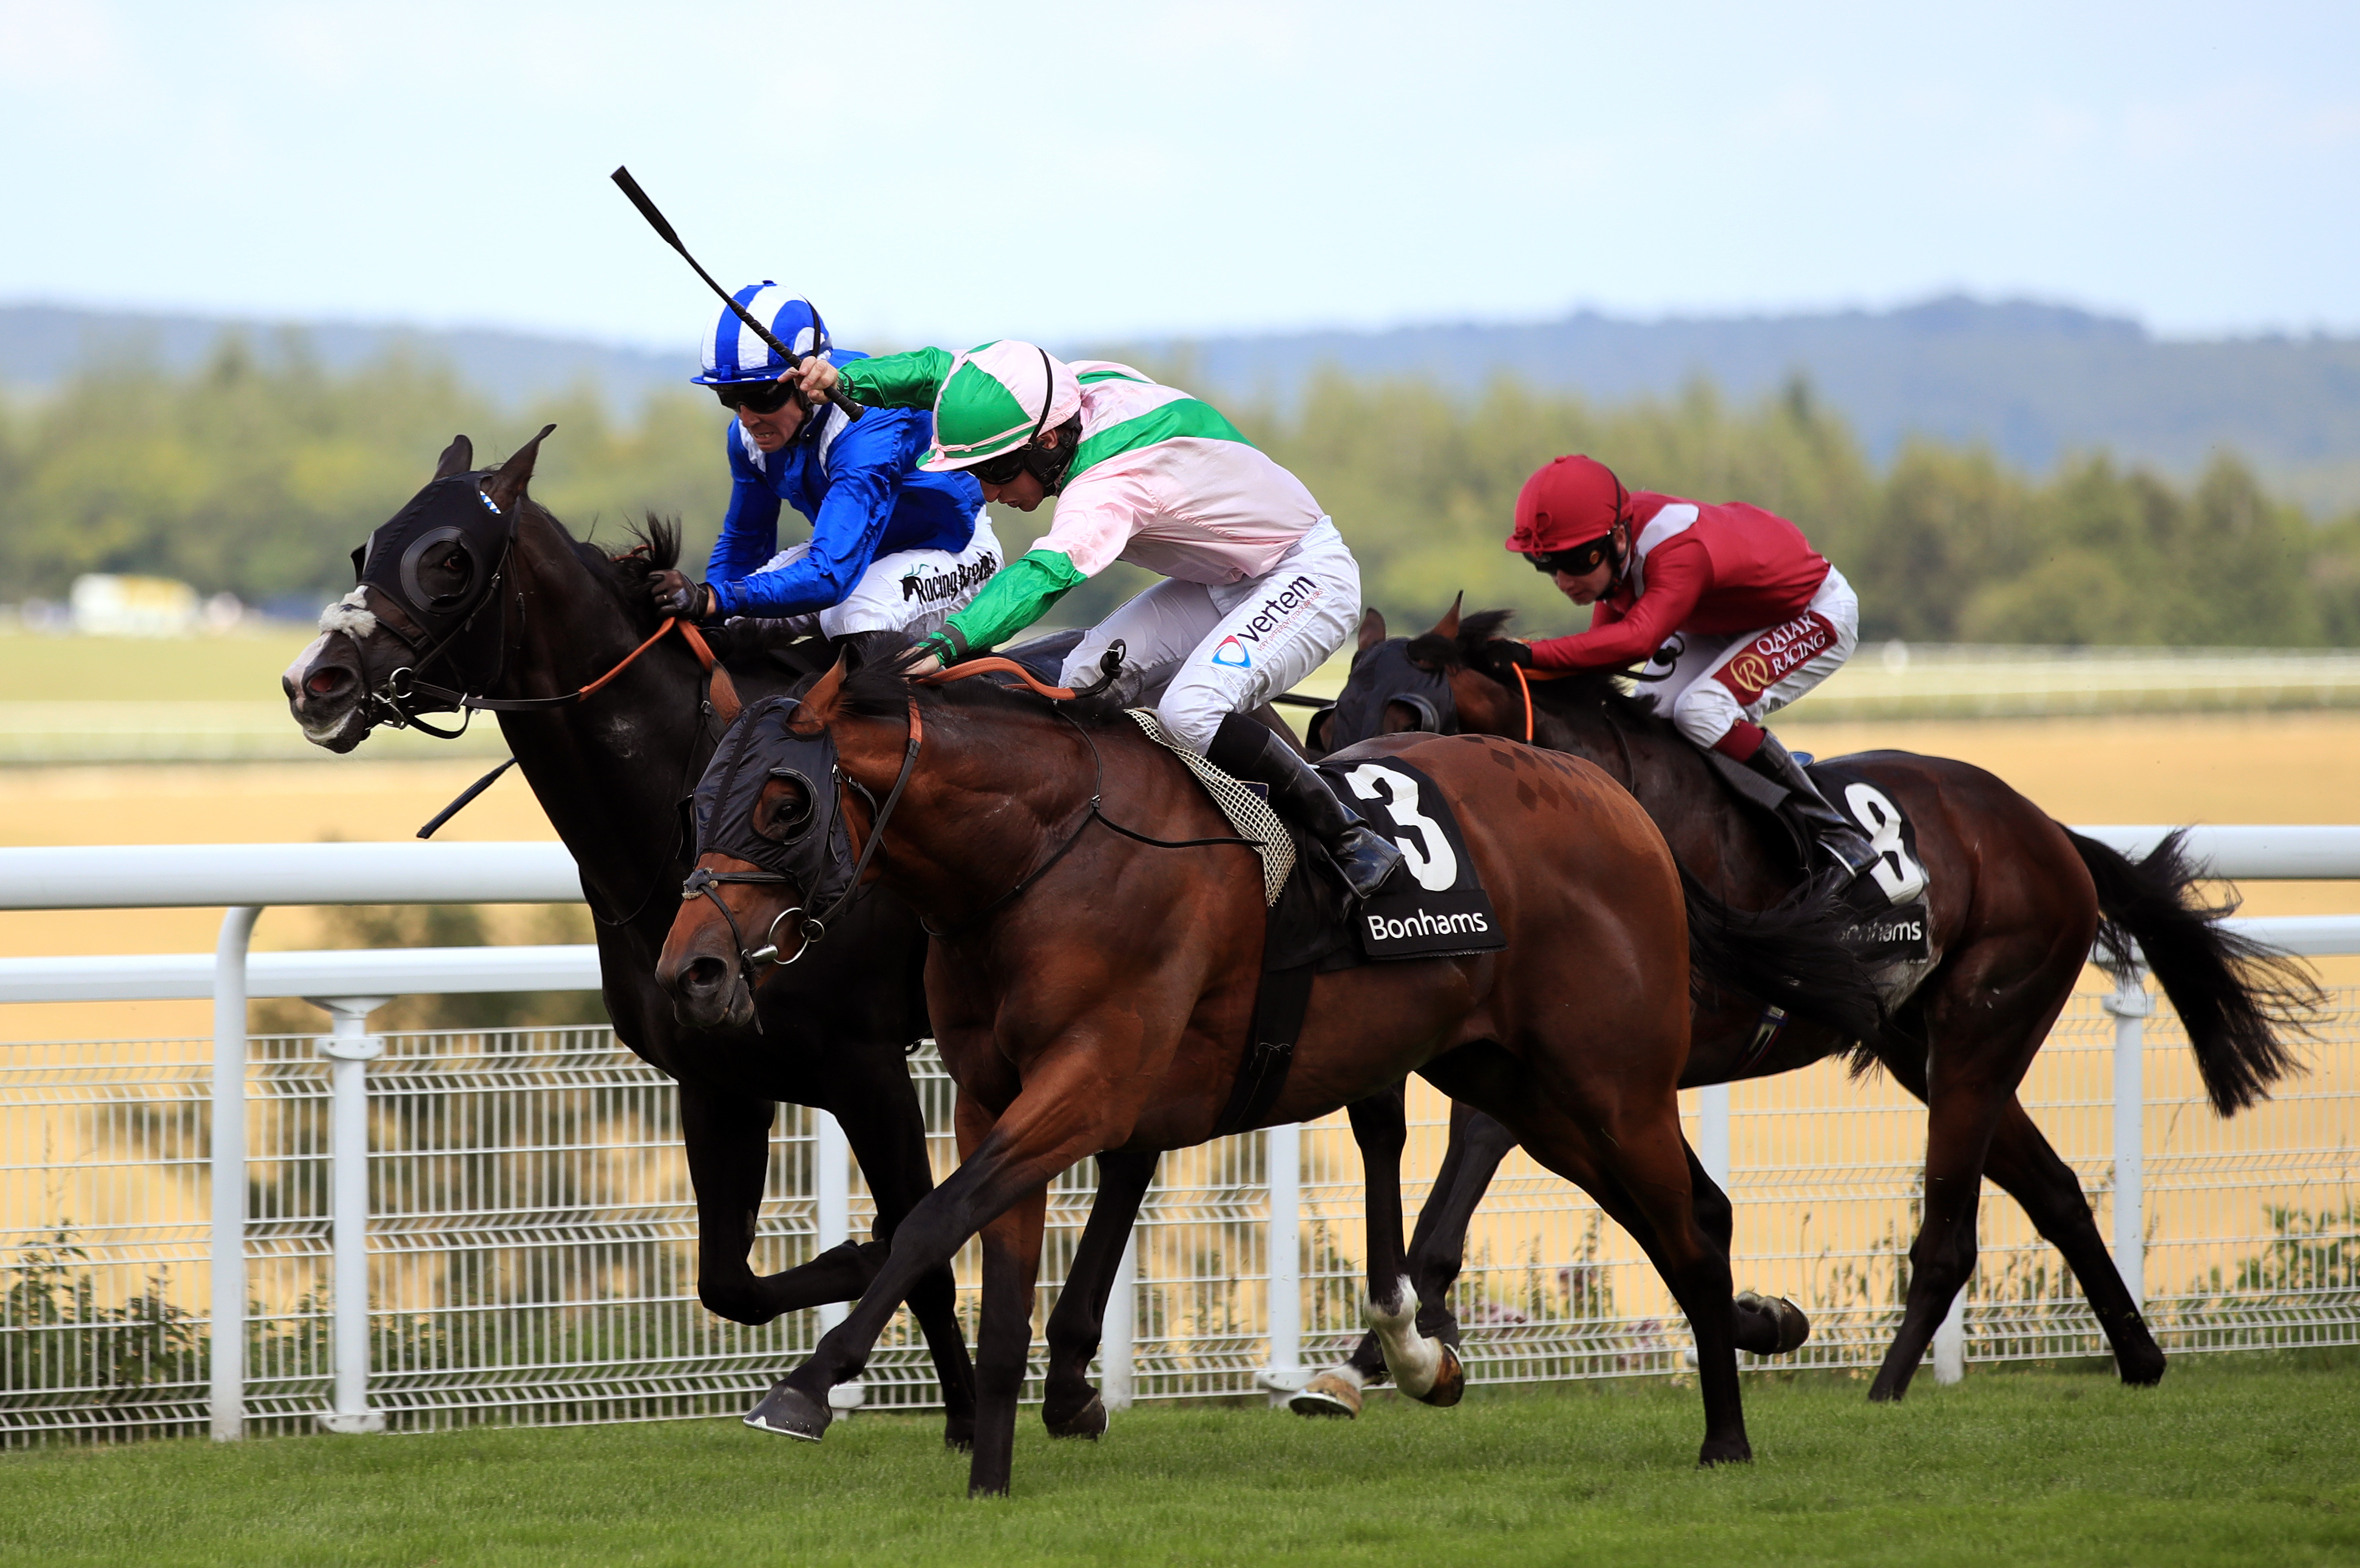 Duke Of Hazzard(pink and green silks) has been nursed back to form by trainer Paul Cole after suffering a foot problem earlier in the season (Adam Davy/PA Images)